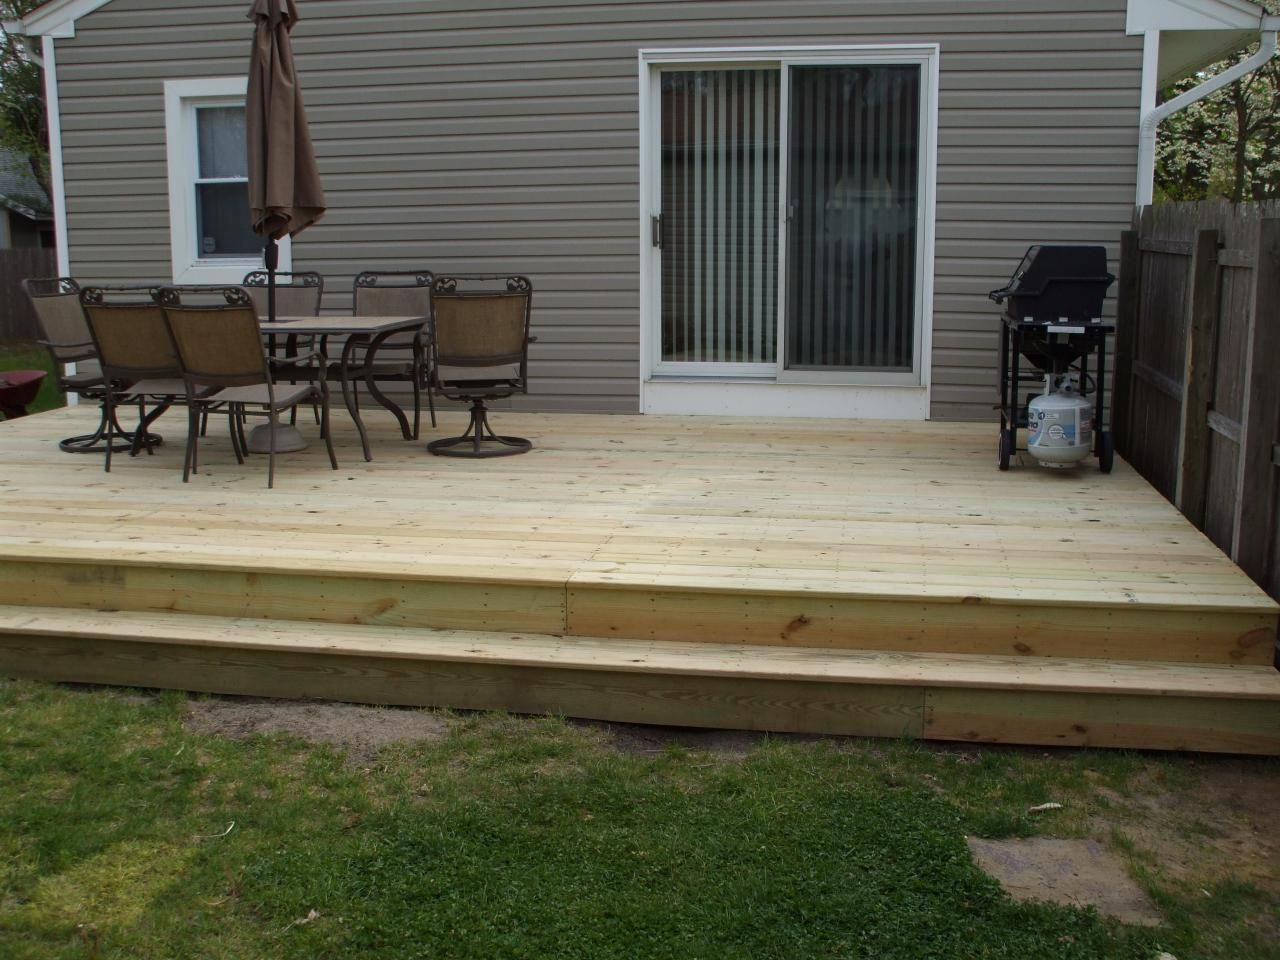 Modern elegant backyard deck ideas ground level there are for Backyard decks